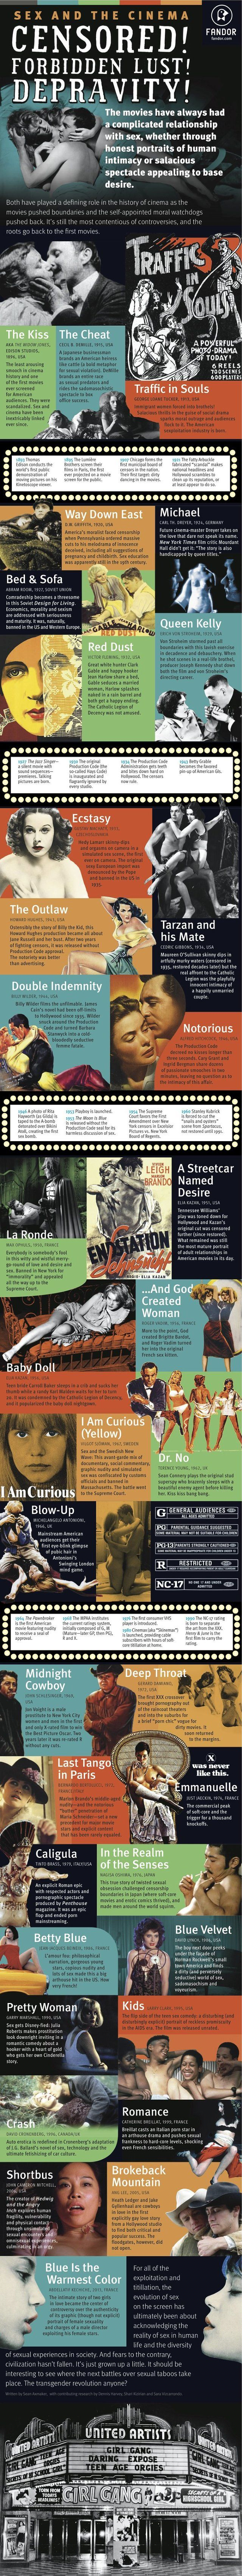 The Graphic History Of Sex On Screen | Co.Design | business + design